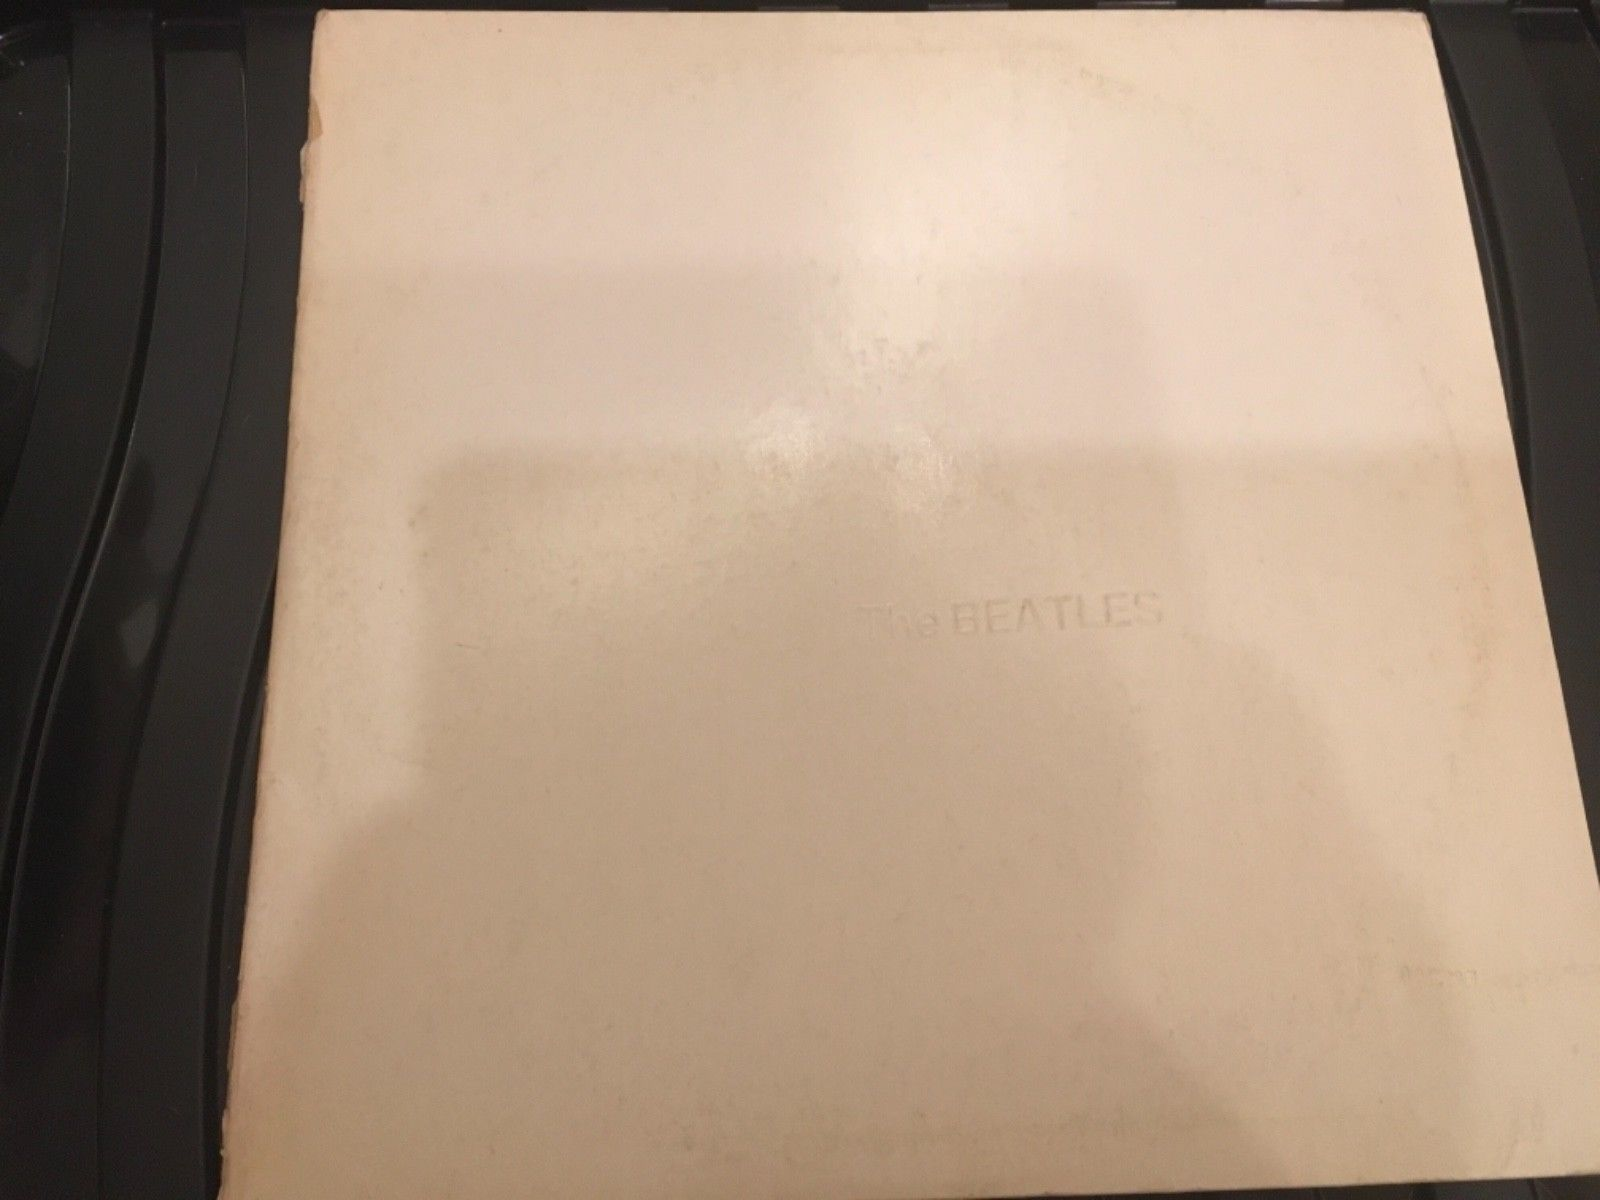 THE BEATLES White Album 2LP Gatefold Sleeve with Poster & 4 Pics Made in Holland